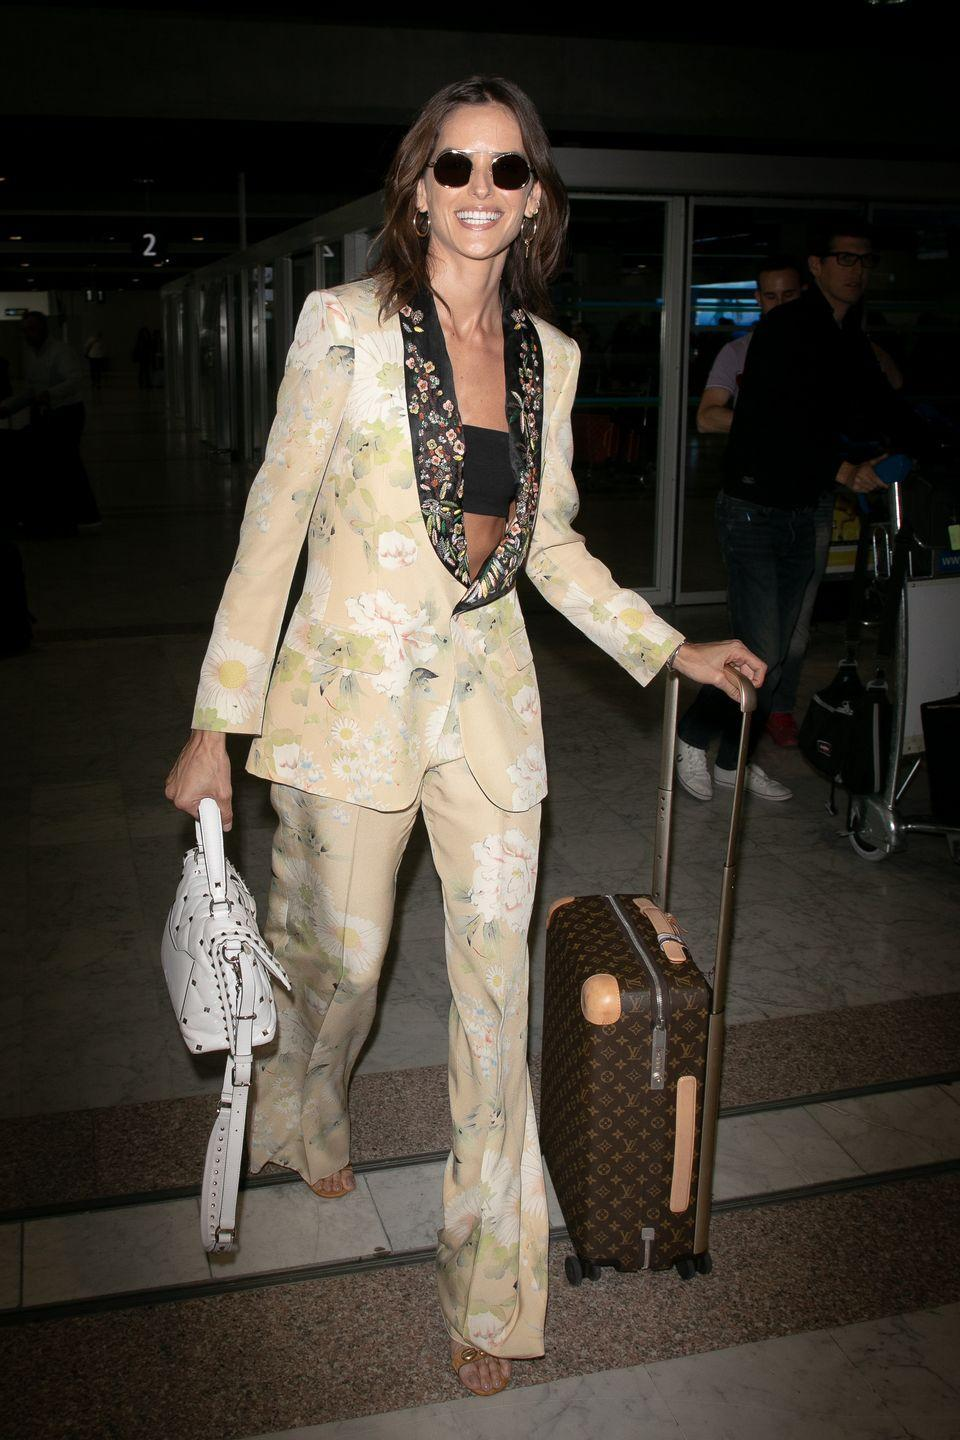 <p><strong>Izabel Goulart, 2019: </strong>The model wore a bralette underneath a floral pantsuit set as she landed in Nice for the 72nd annual Cannes Film Festival. </p>